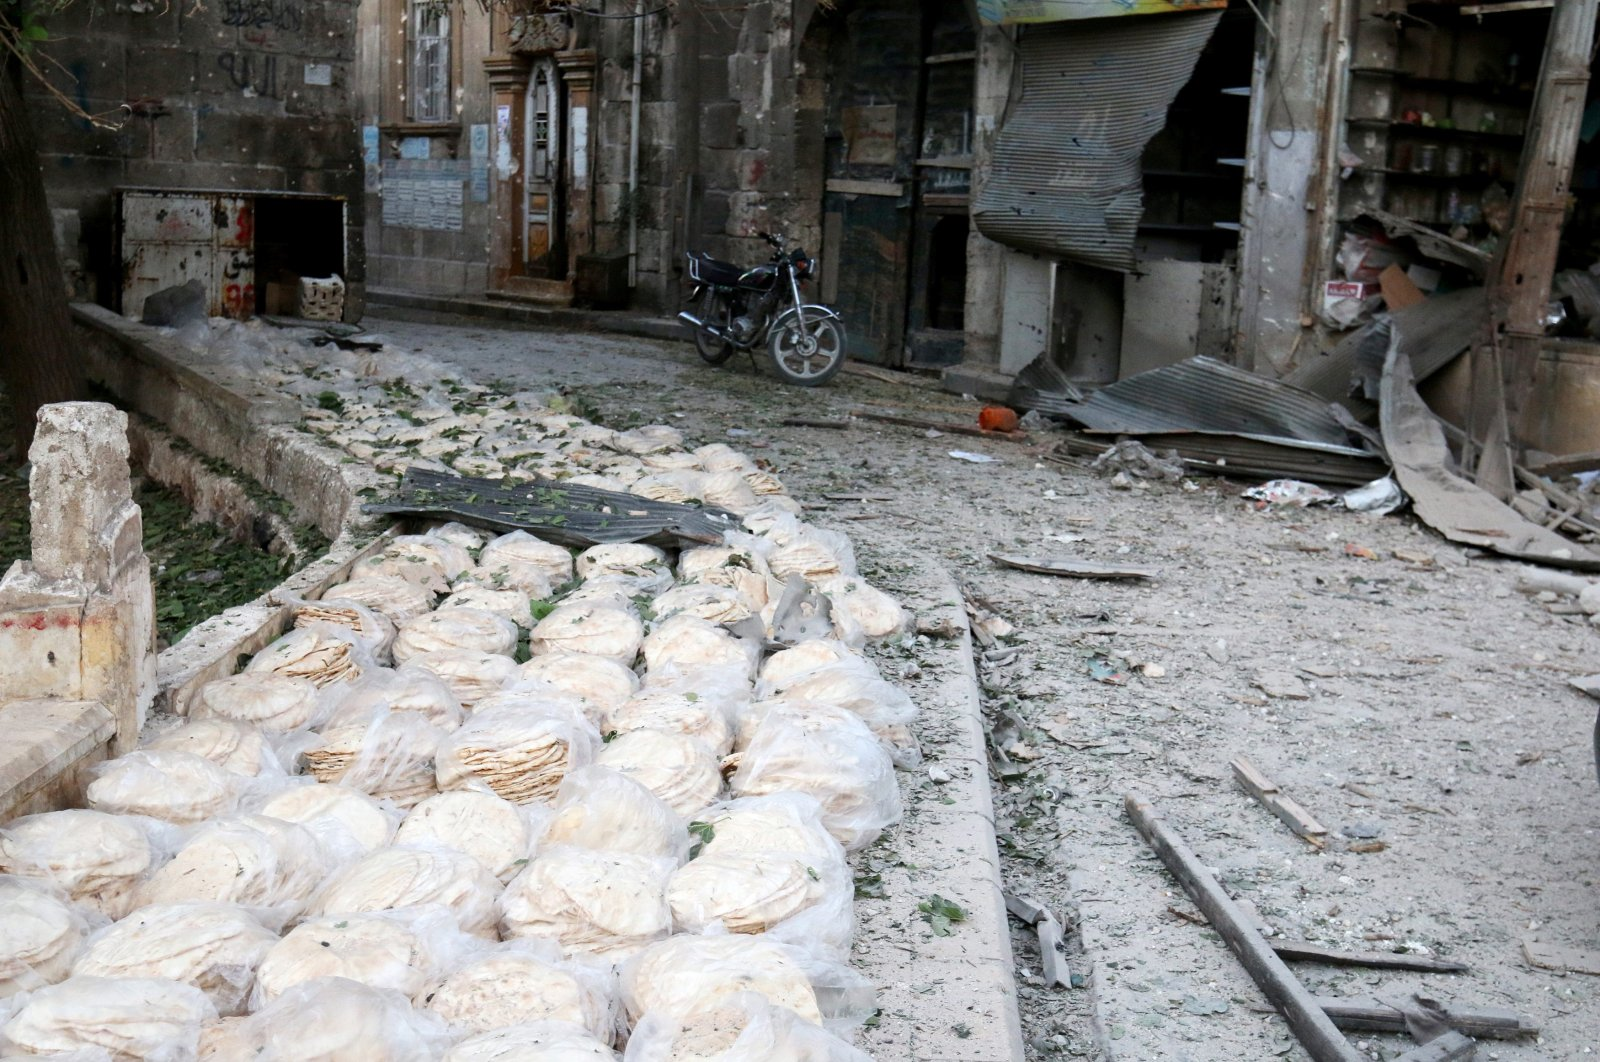 Stacks of bread are seen at a damaged site after an airstrike in the opposition-held Bab al-Maqam neighborhood of Aleppo, Syria, Sept. 28, 2016. (Reuters Photo)